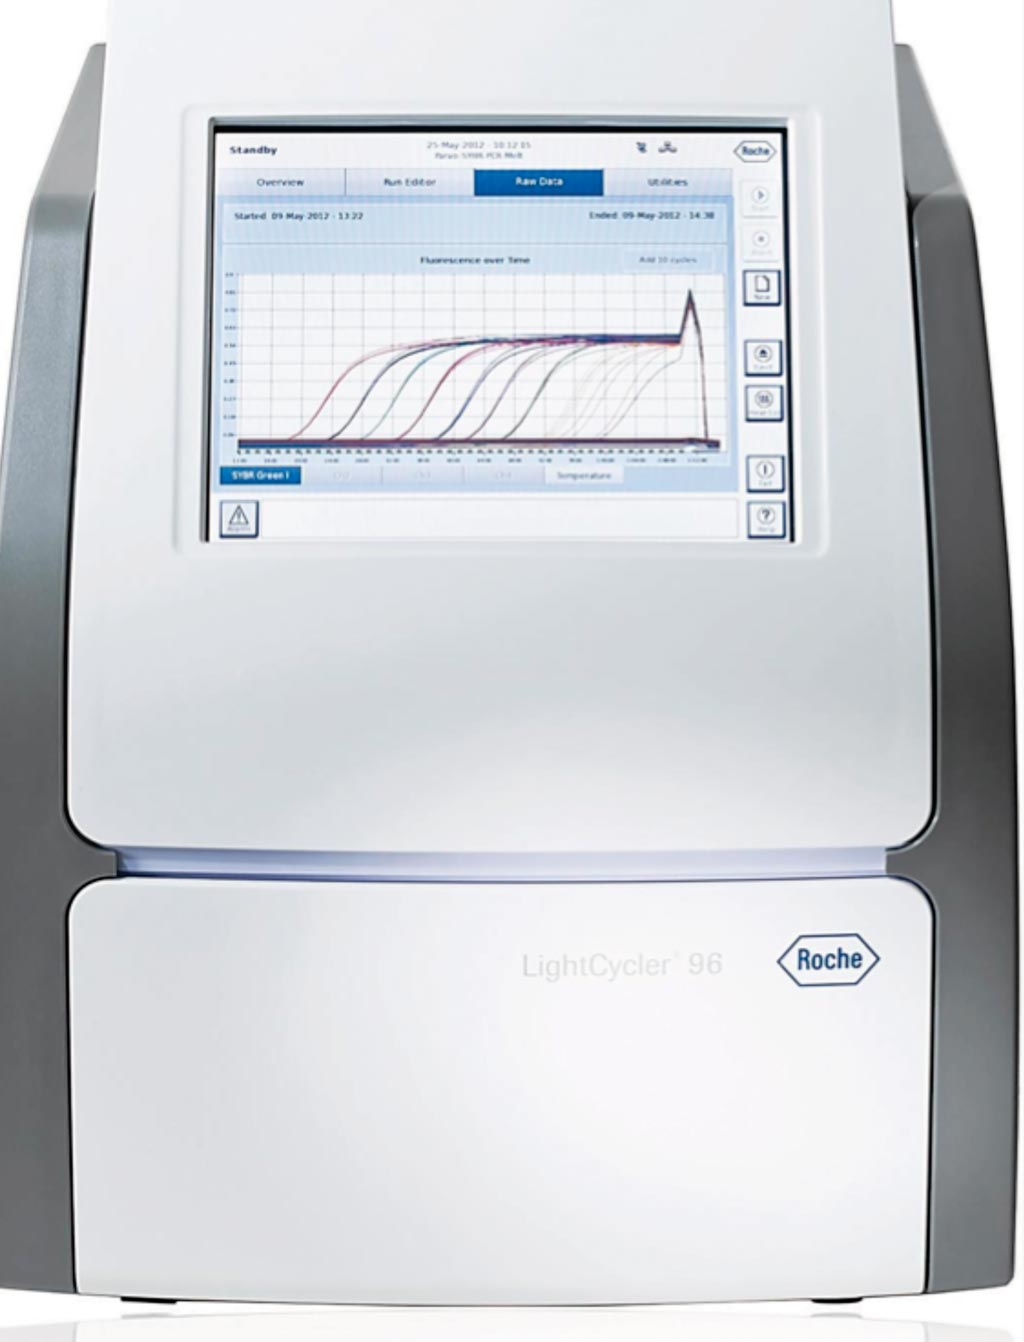 Image: The LightCycler 96 real-time PCR system (Photo courtesy of Roche Diagnostics).